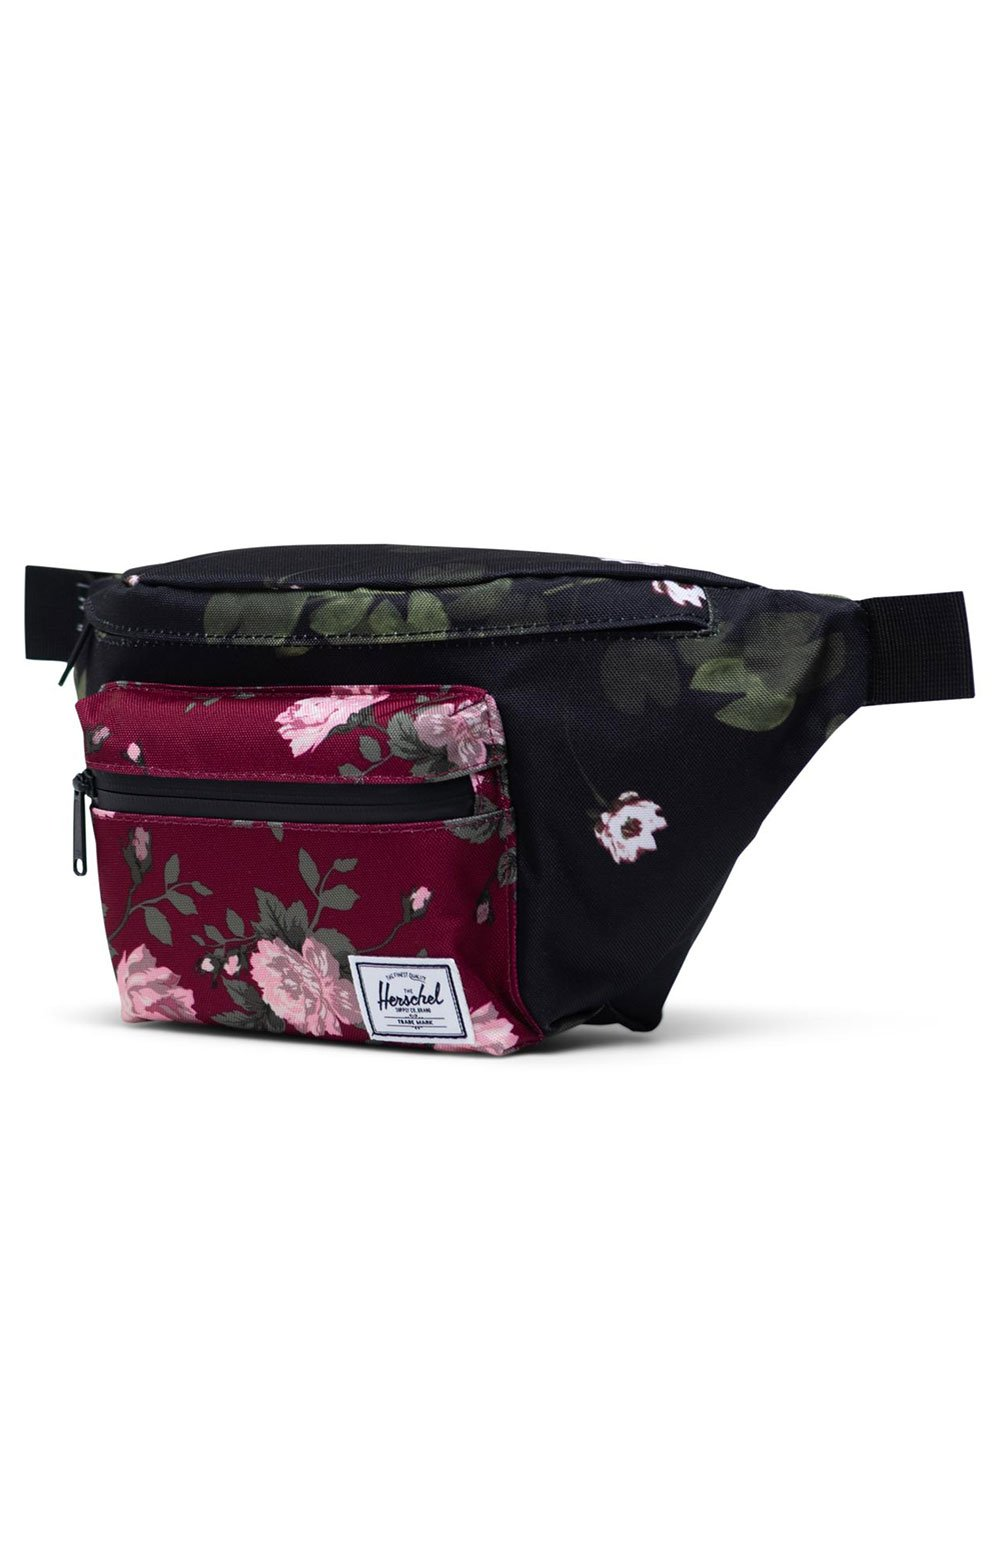 Seventeen Fanny Pack - Fine China Floral  2